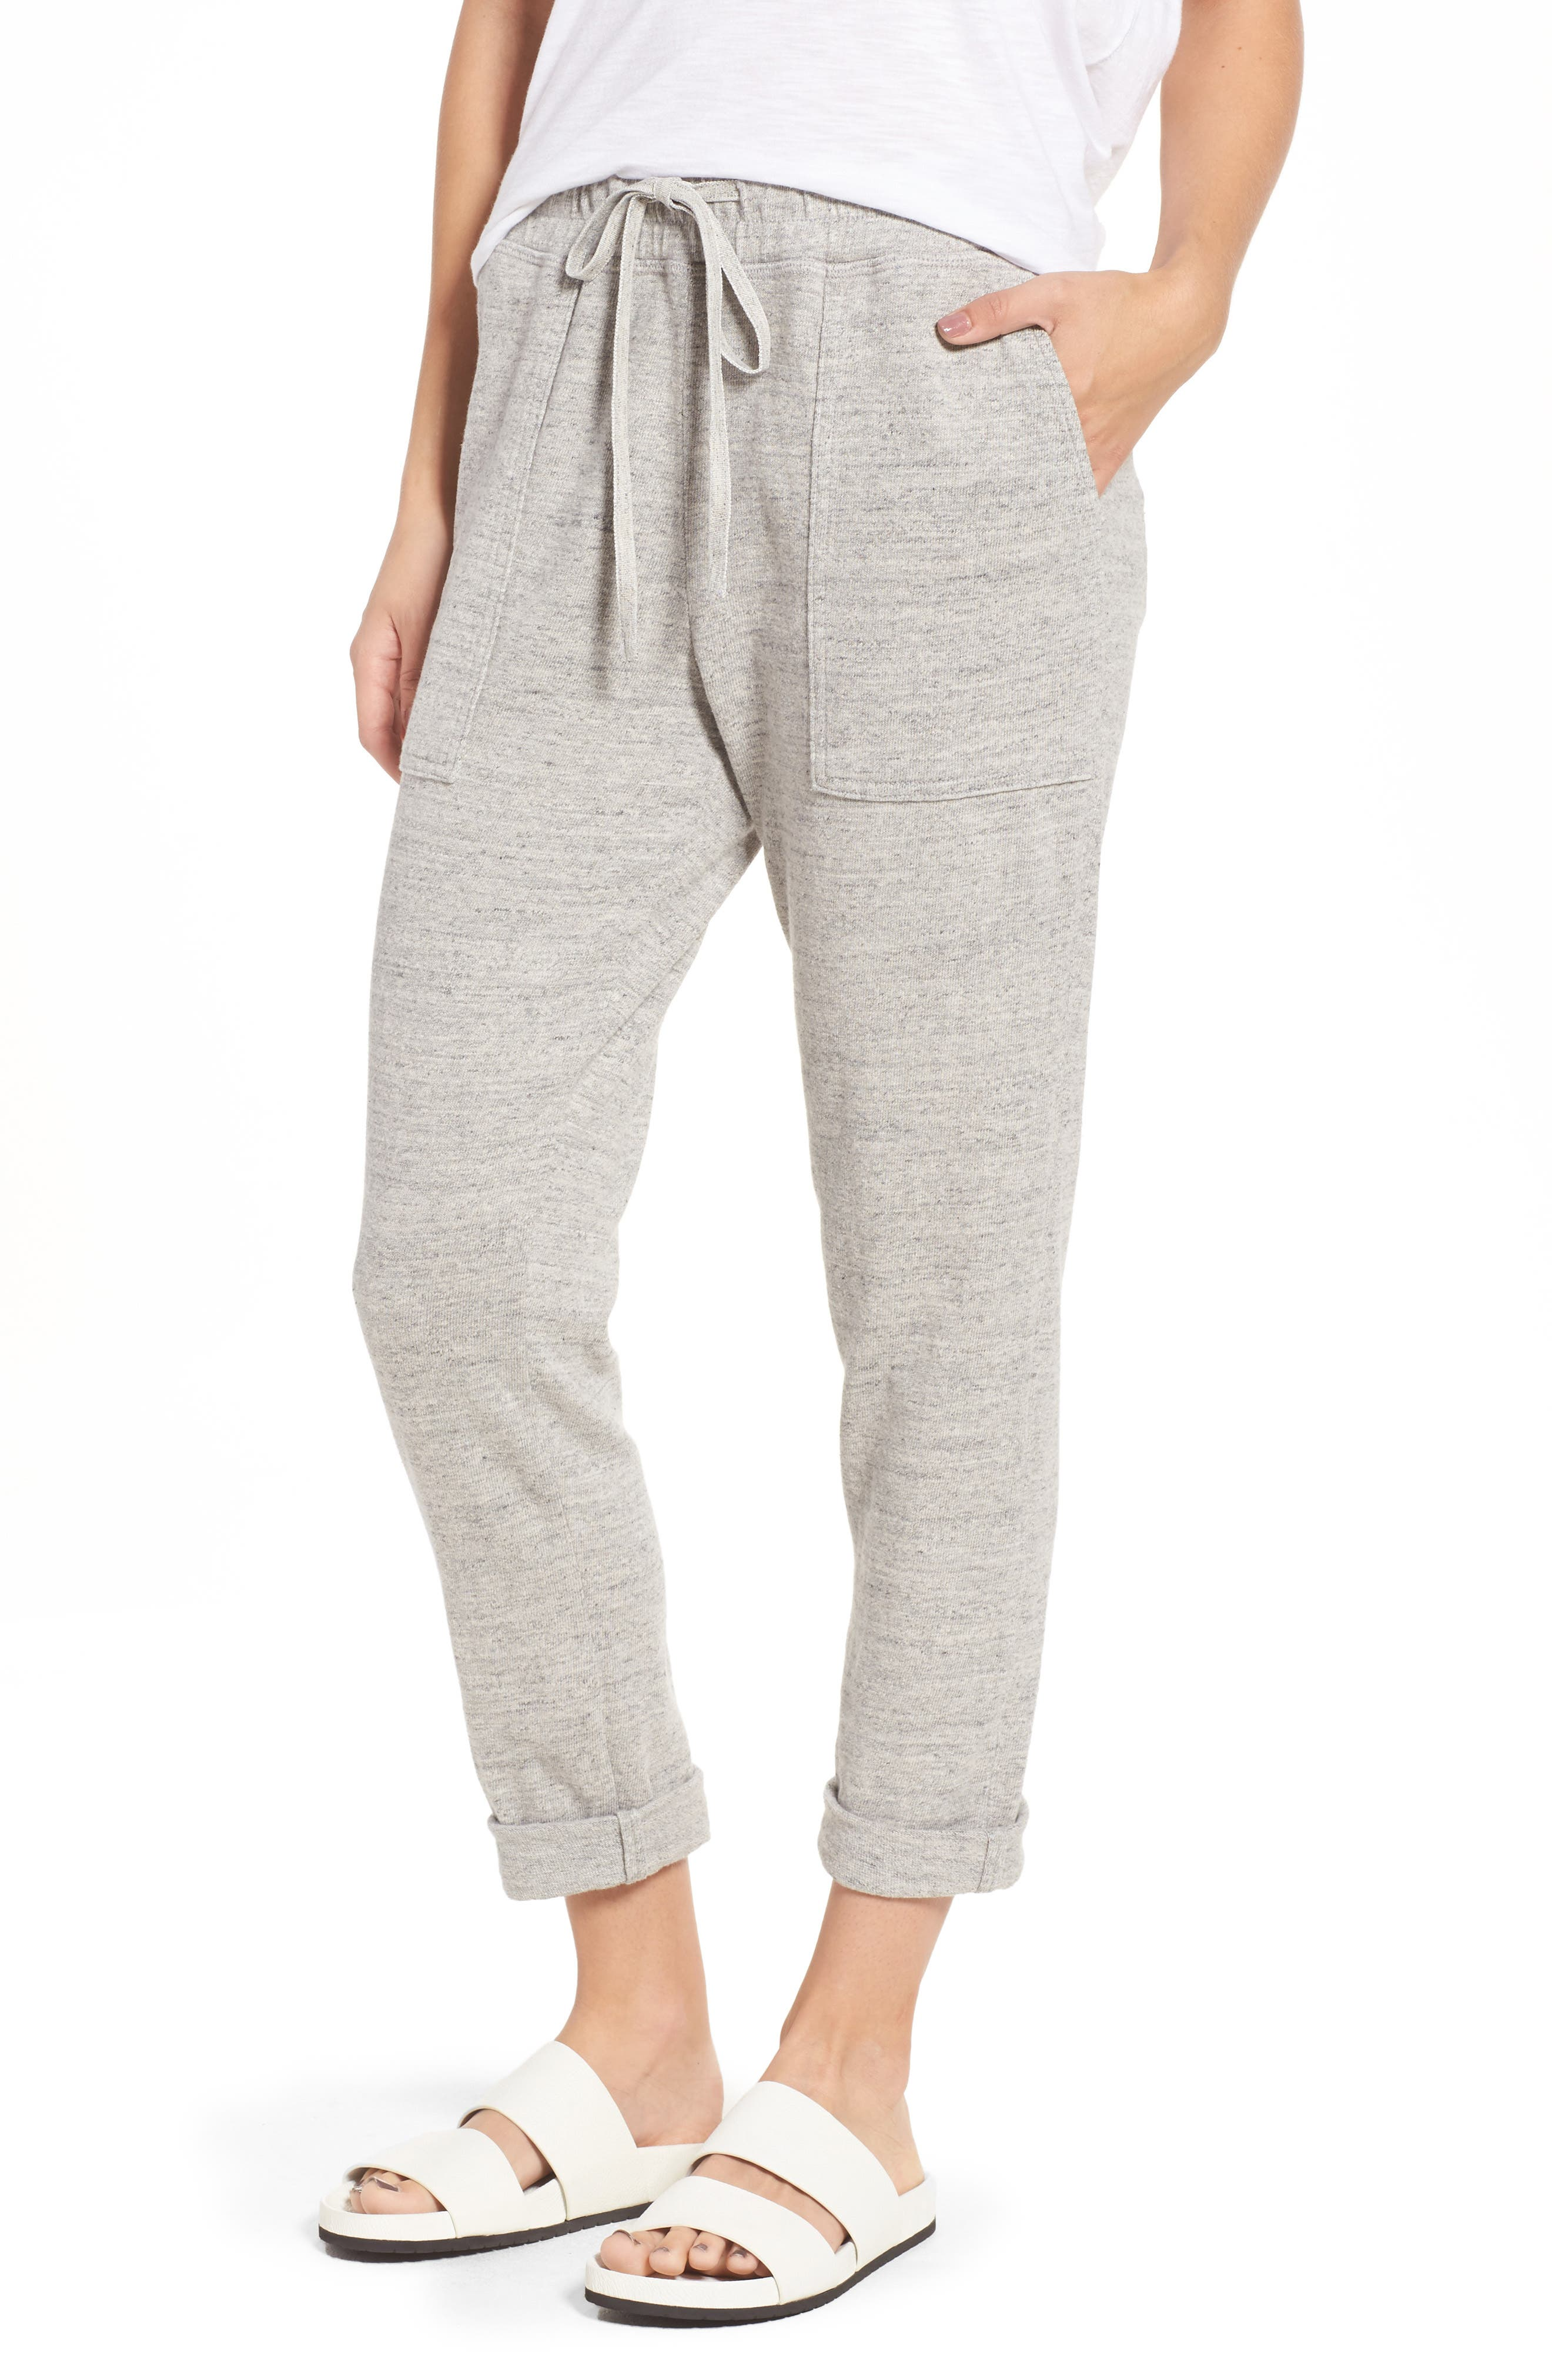 James Perse Relaxed Tapered Sweatpants